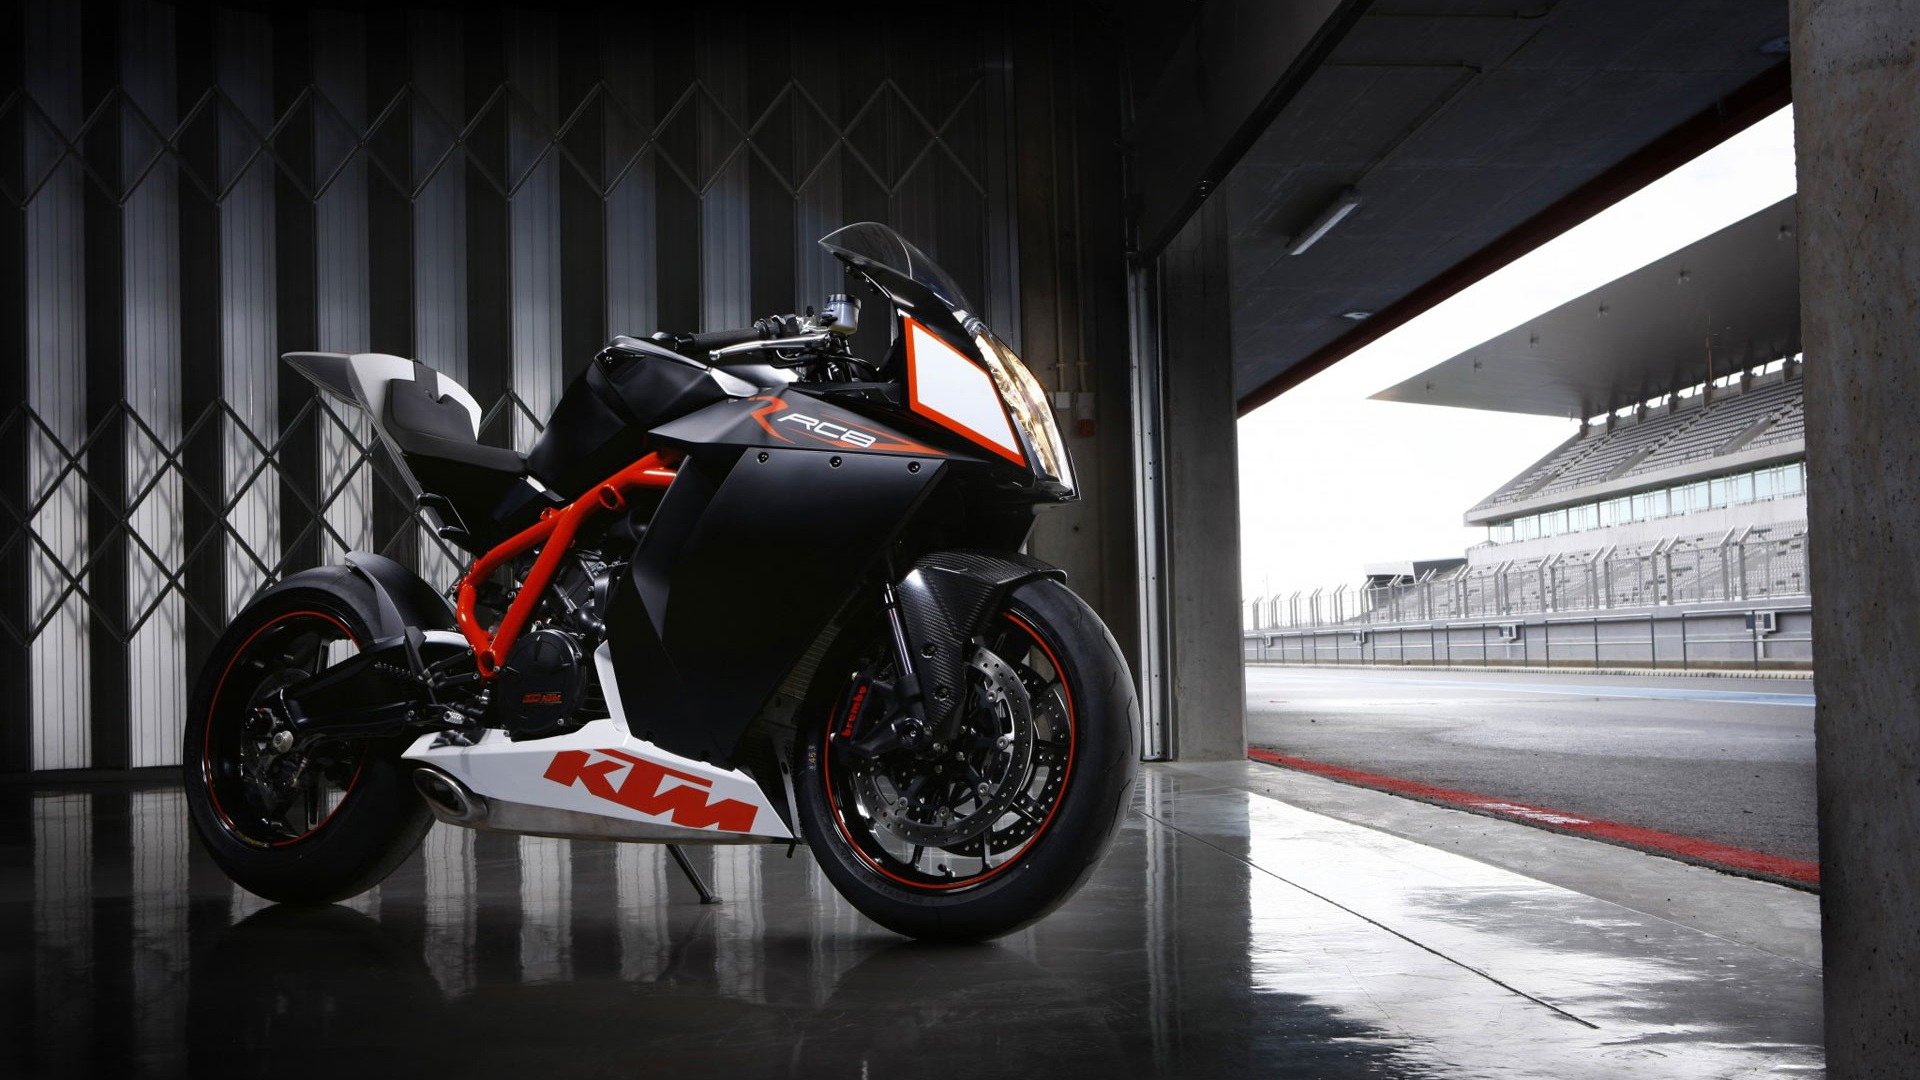 1920x1080 - KTM RC8 Wallpapers 16